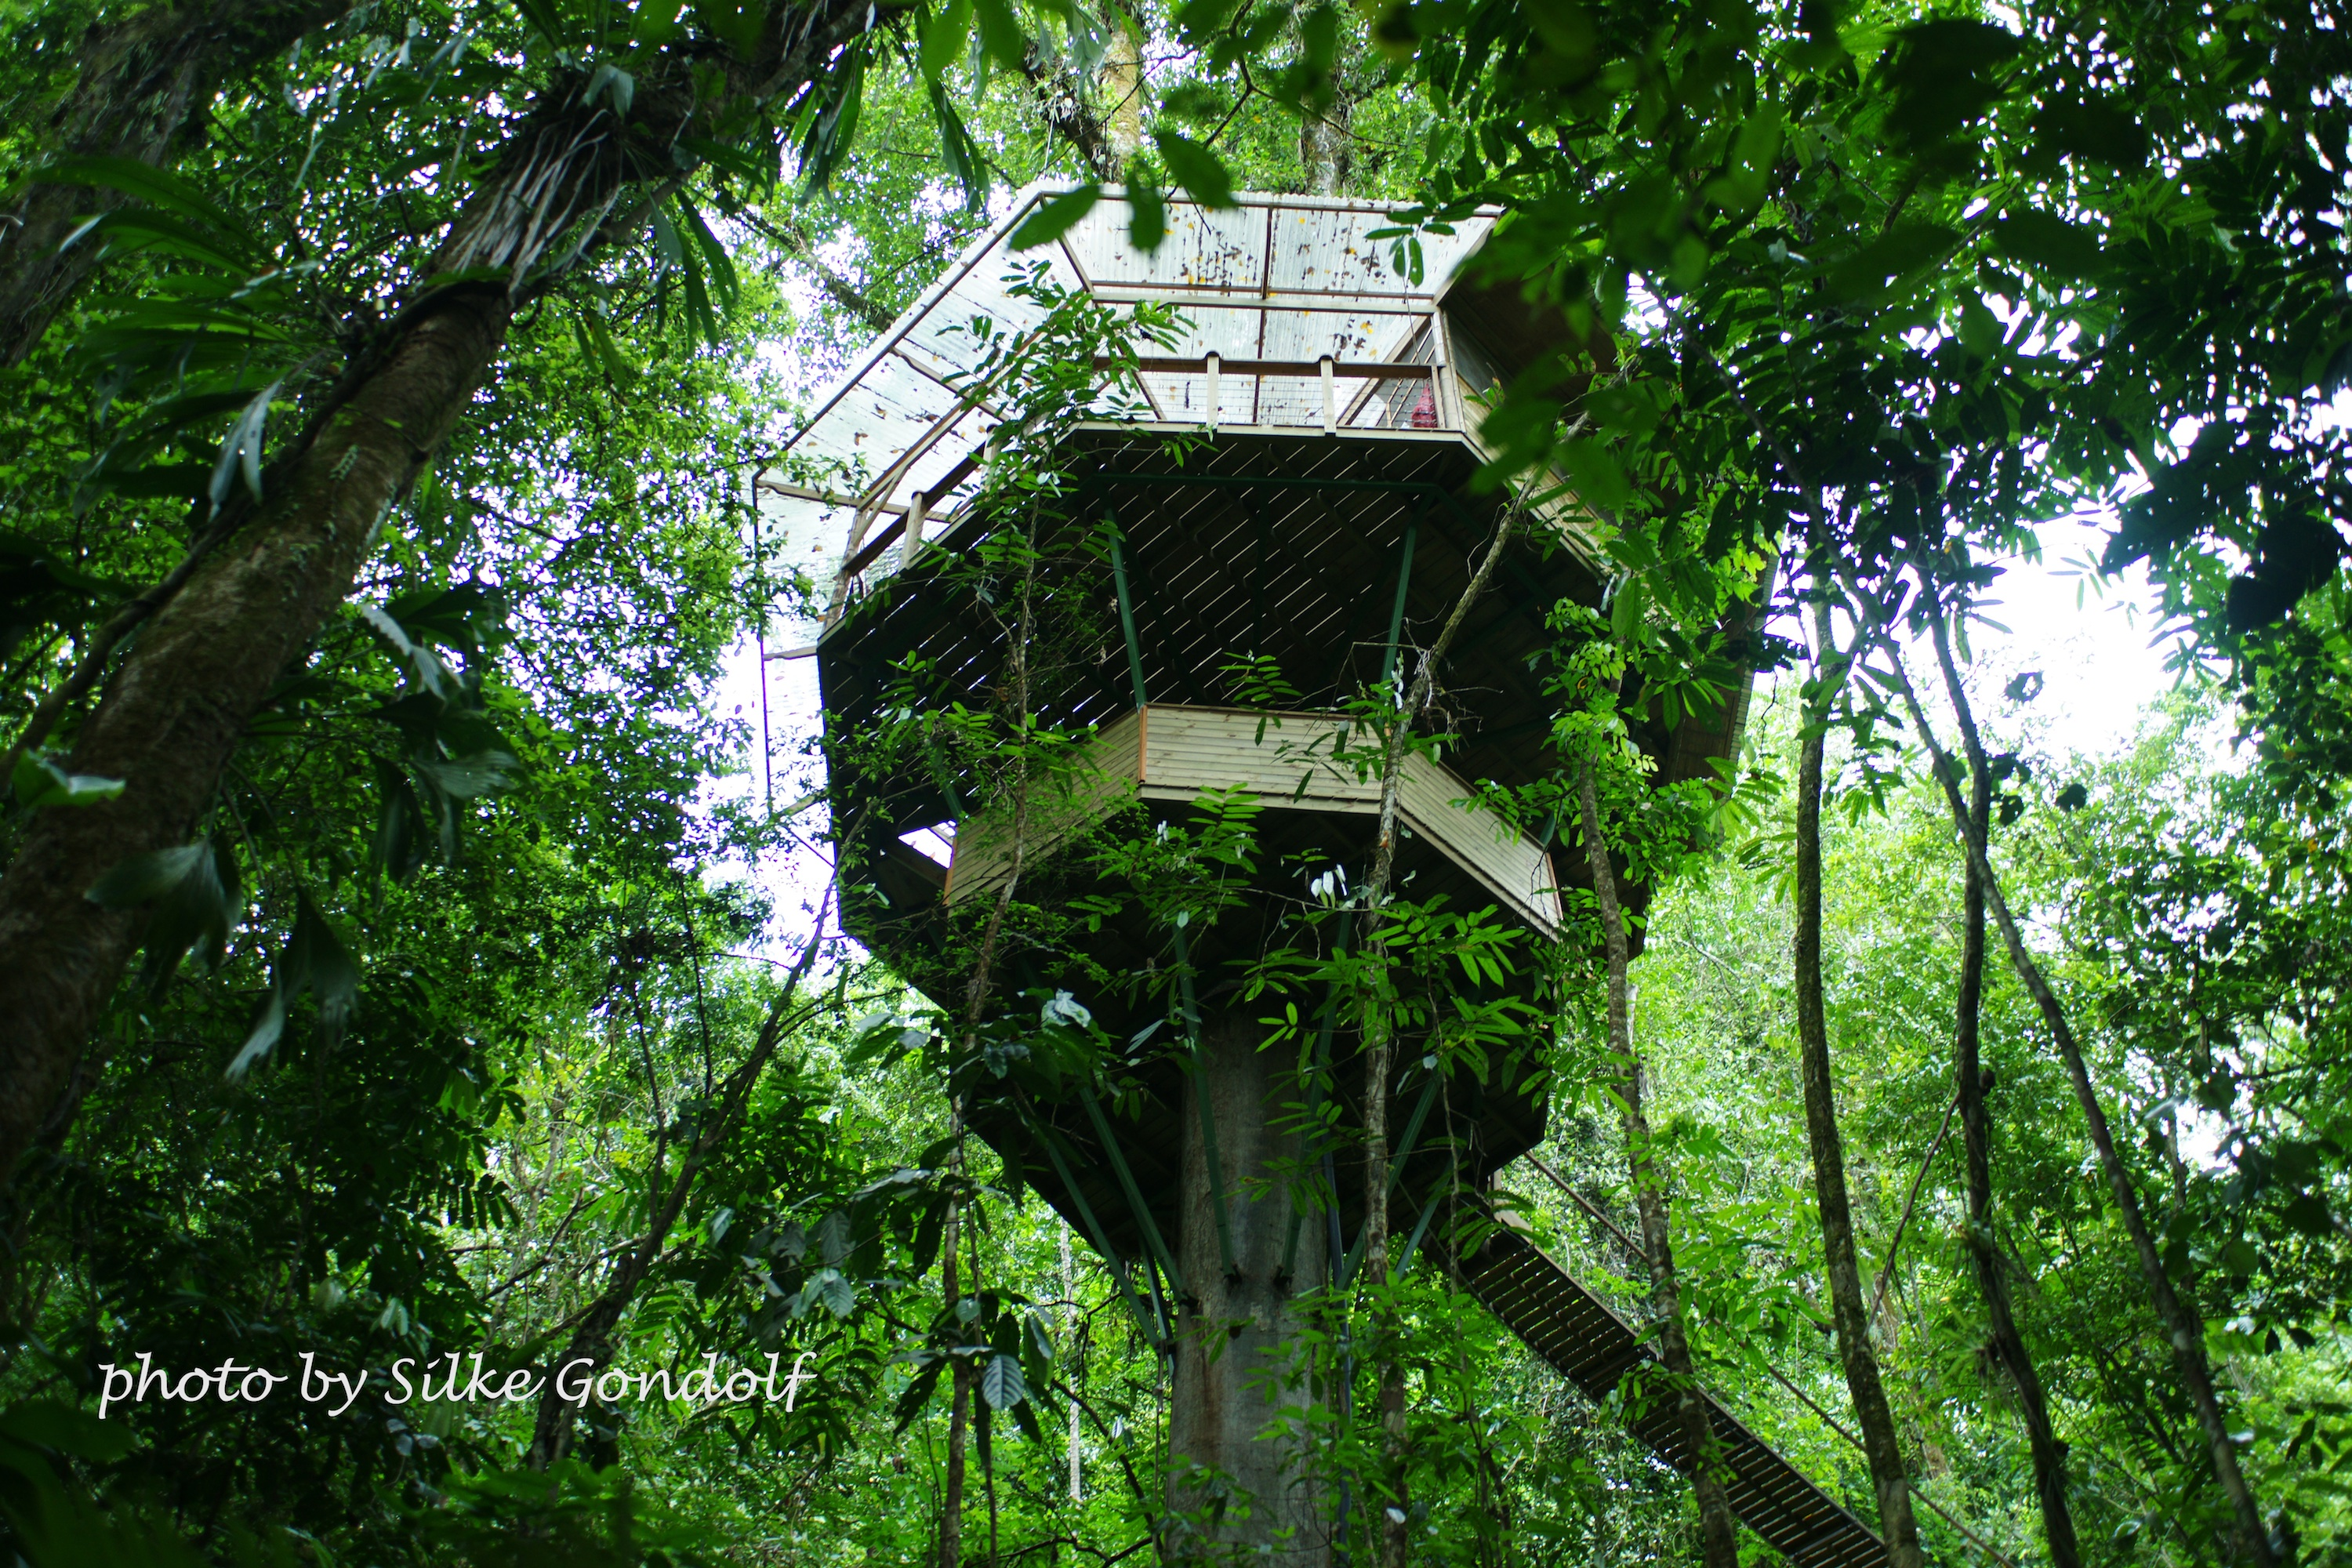 Costa rica 39 s finca bellavista treehouse community is 100 for Tree house costa rica